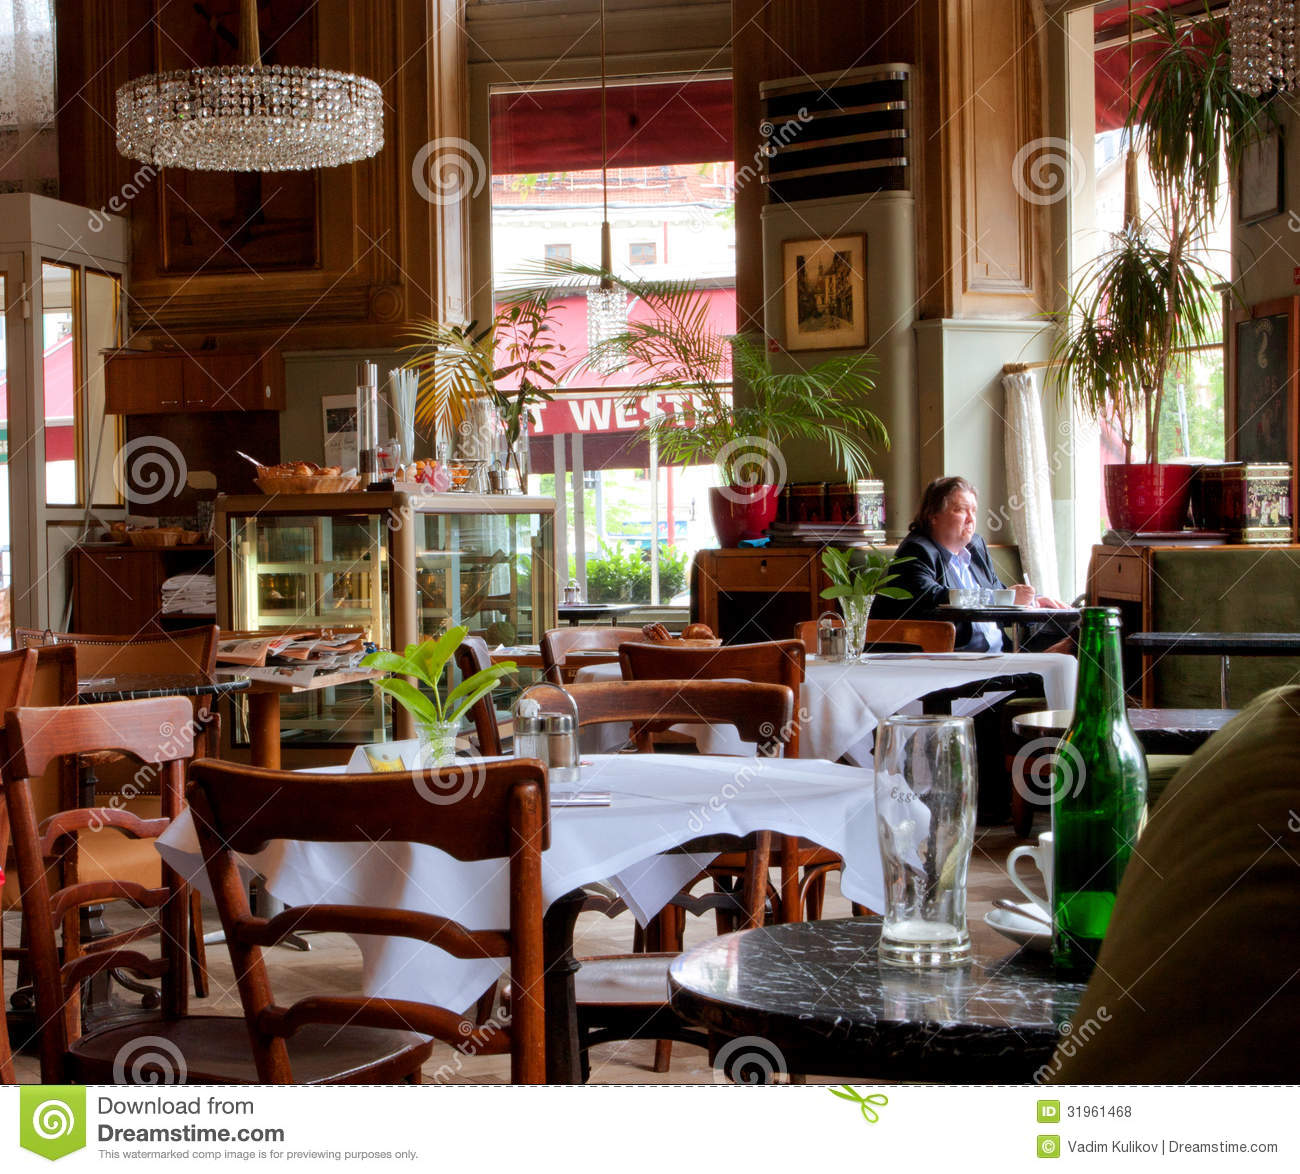 Viennese Style Interior Design And People Inside Editorial Stock Photo  Image 31961468